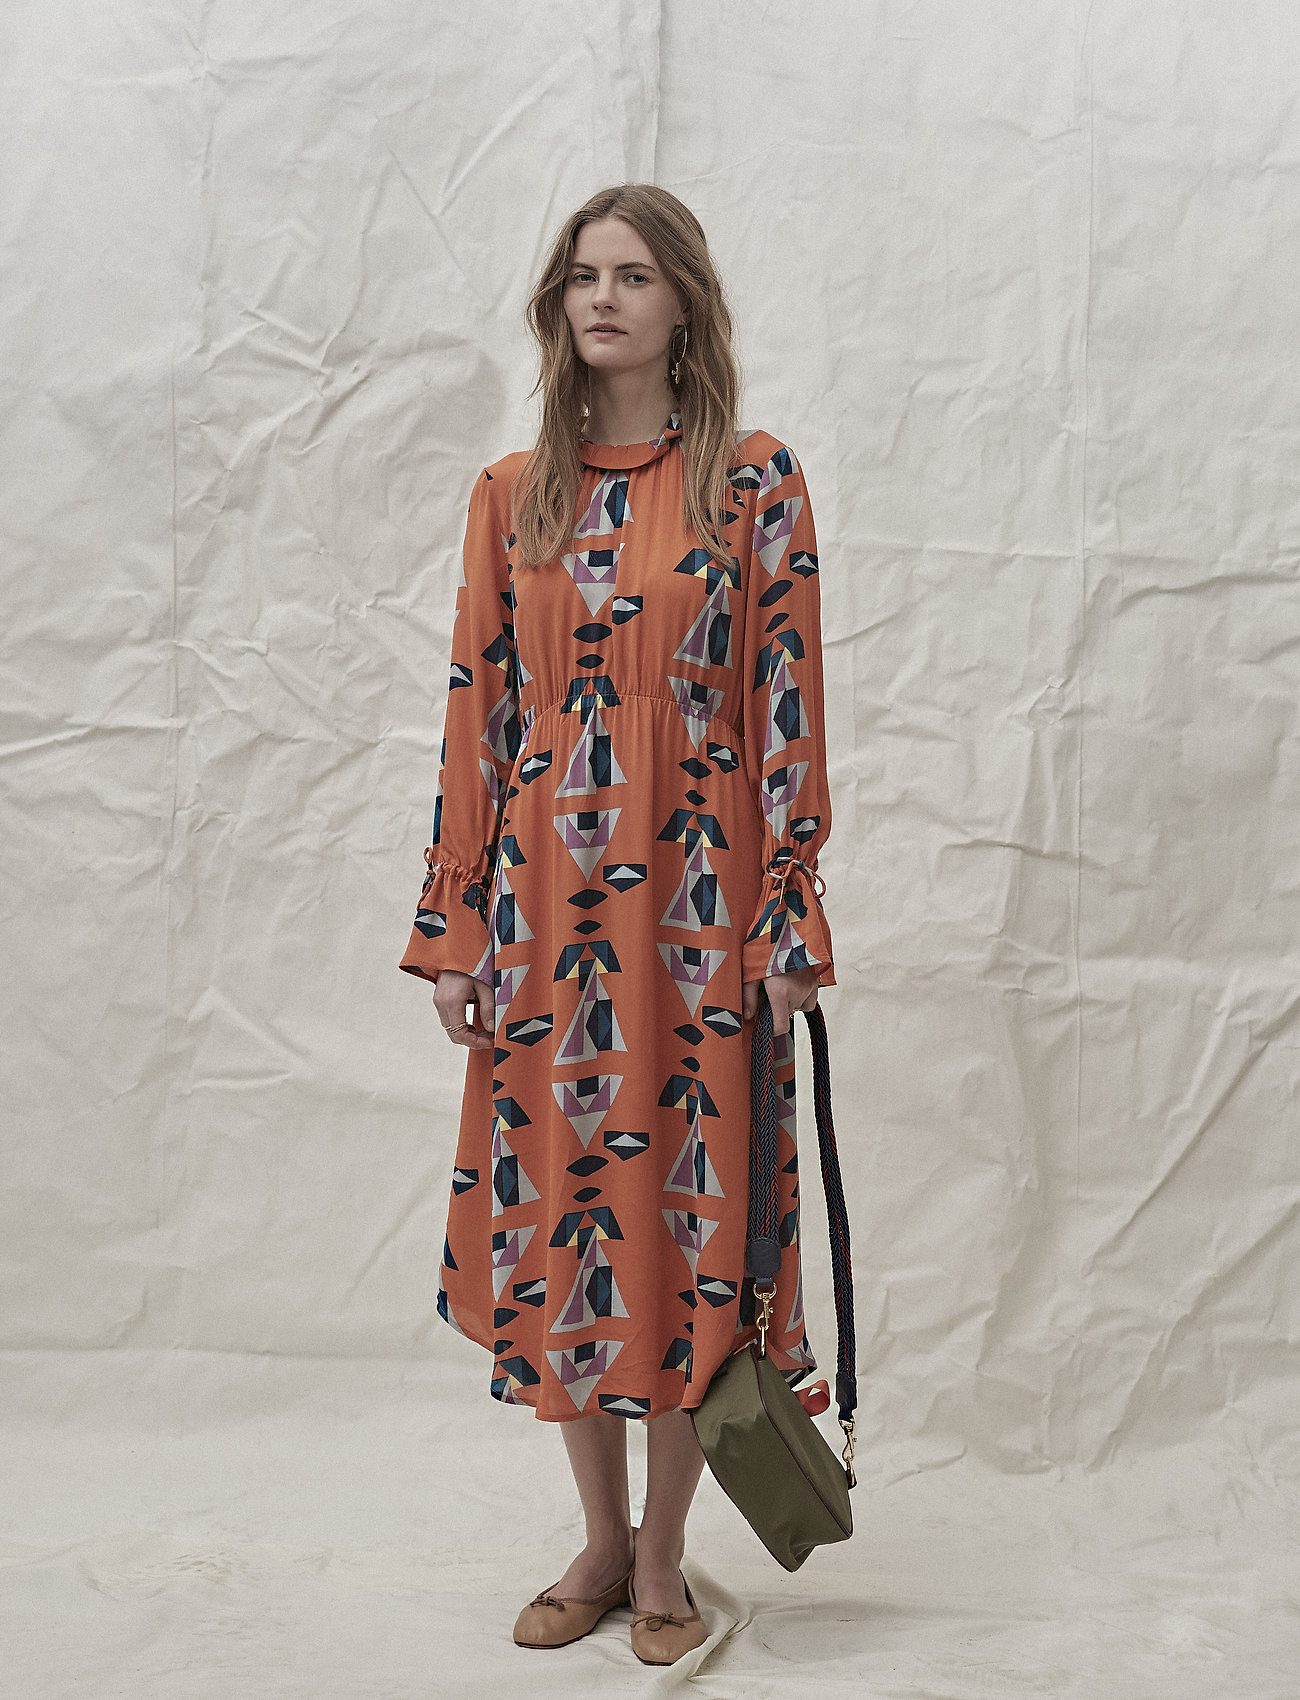 Noa Noa - Dress long sleeve - shirt dresses - print orange